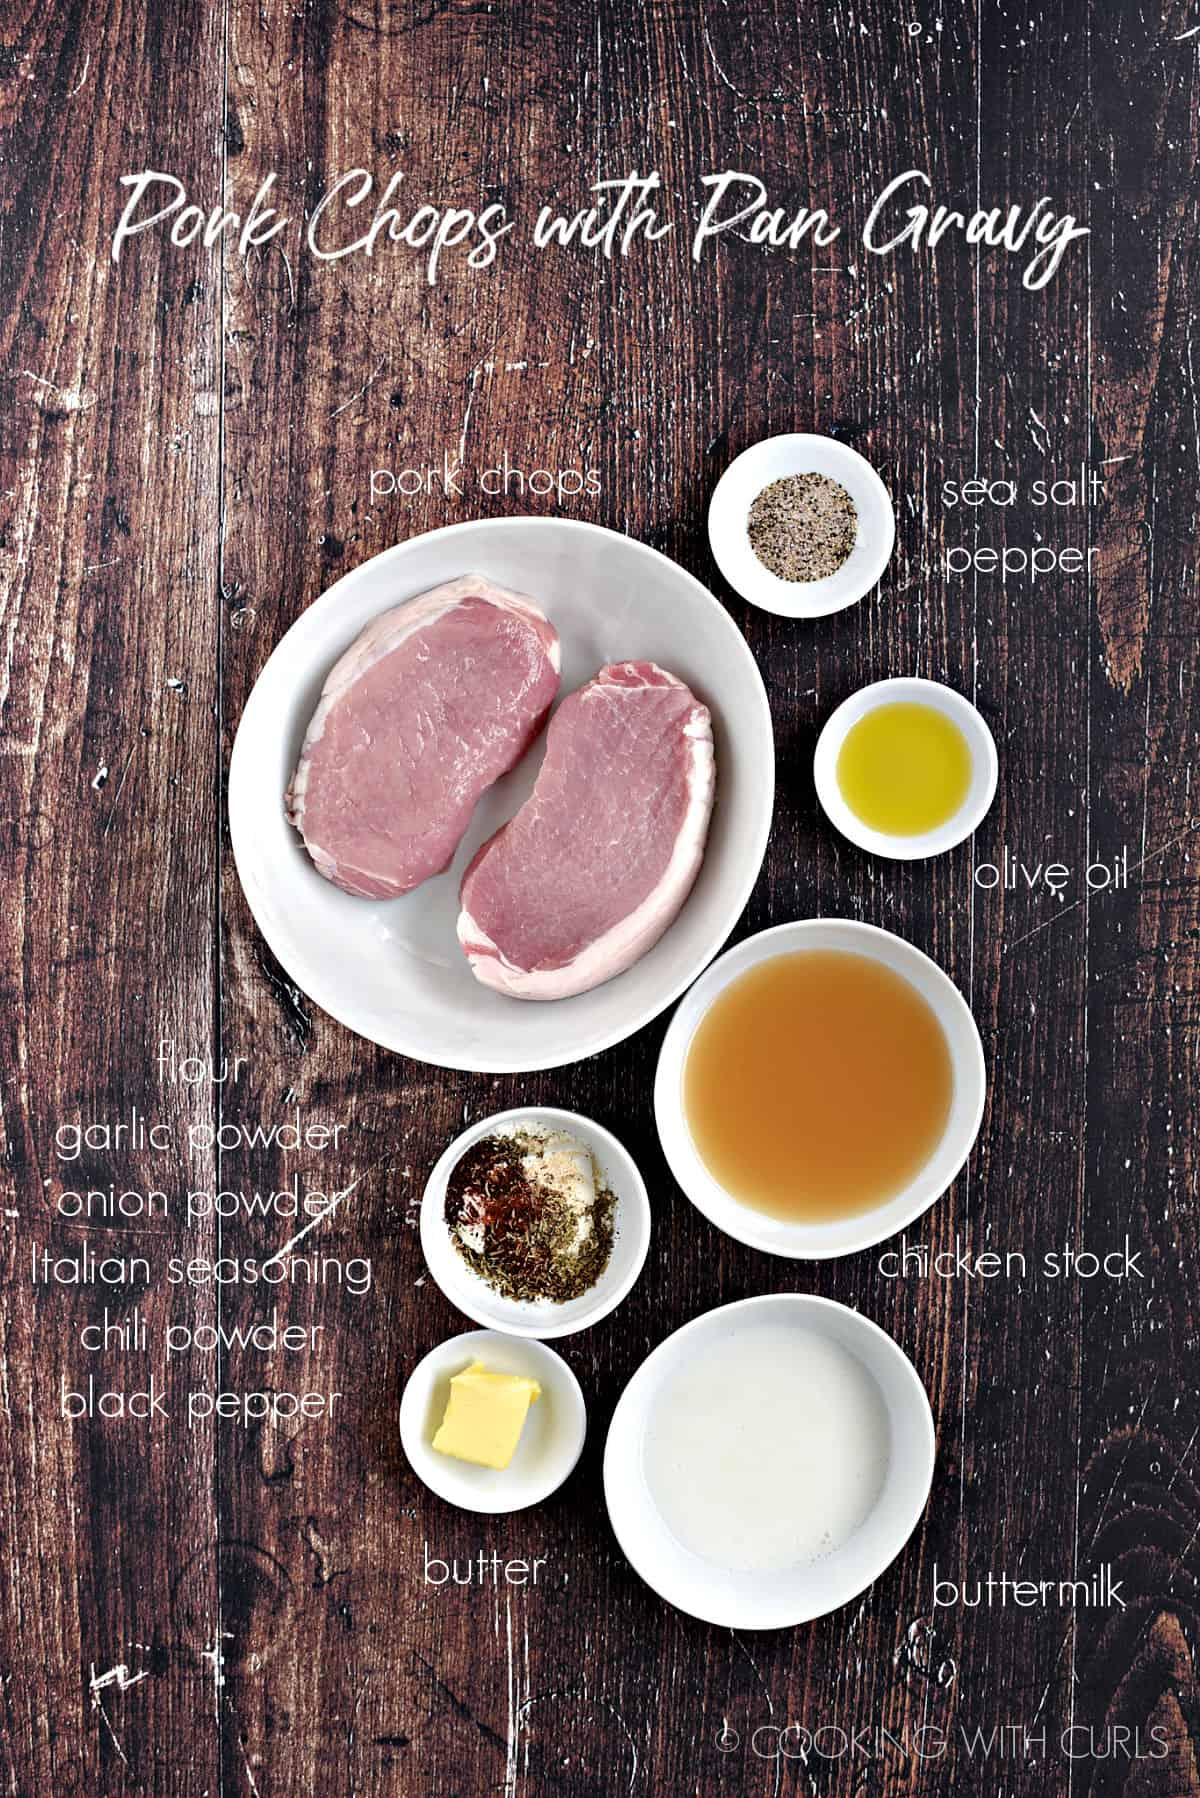 Ingredients to make pork chops with pan gravy all in separate white bowls.